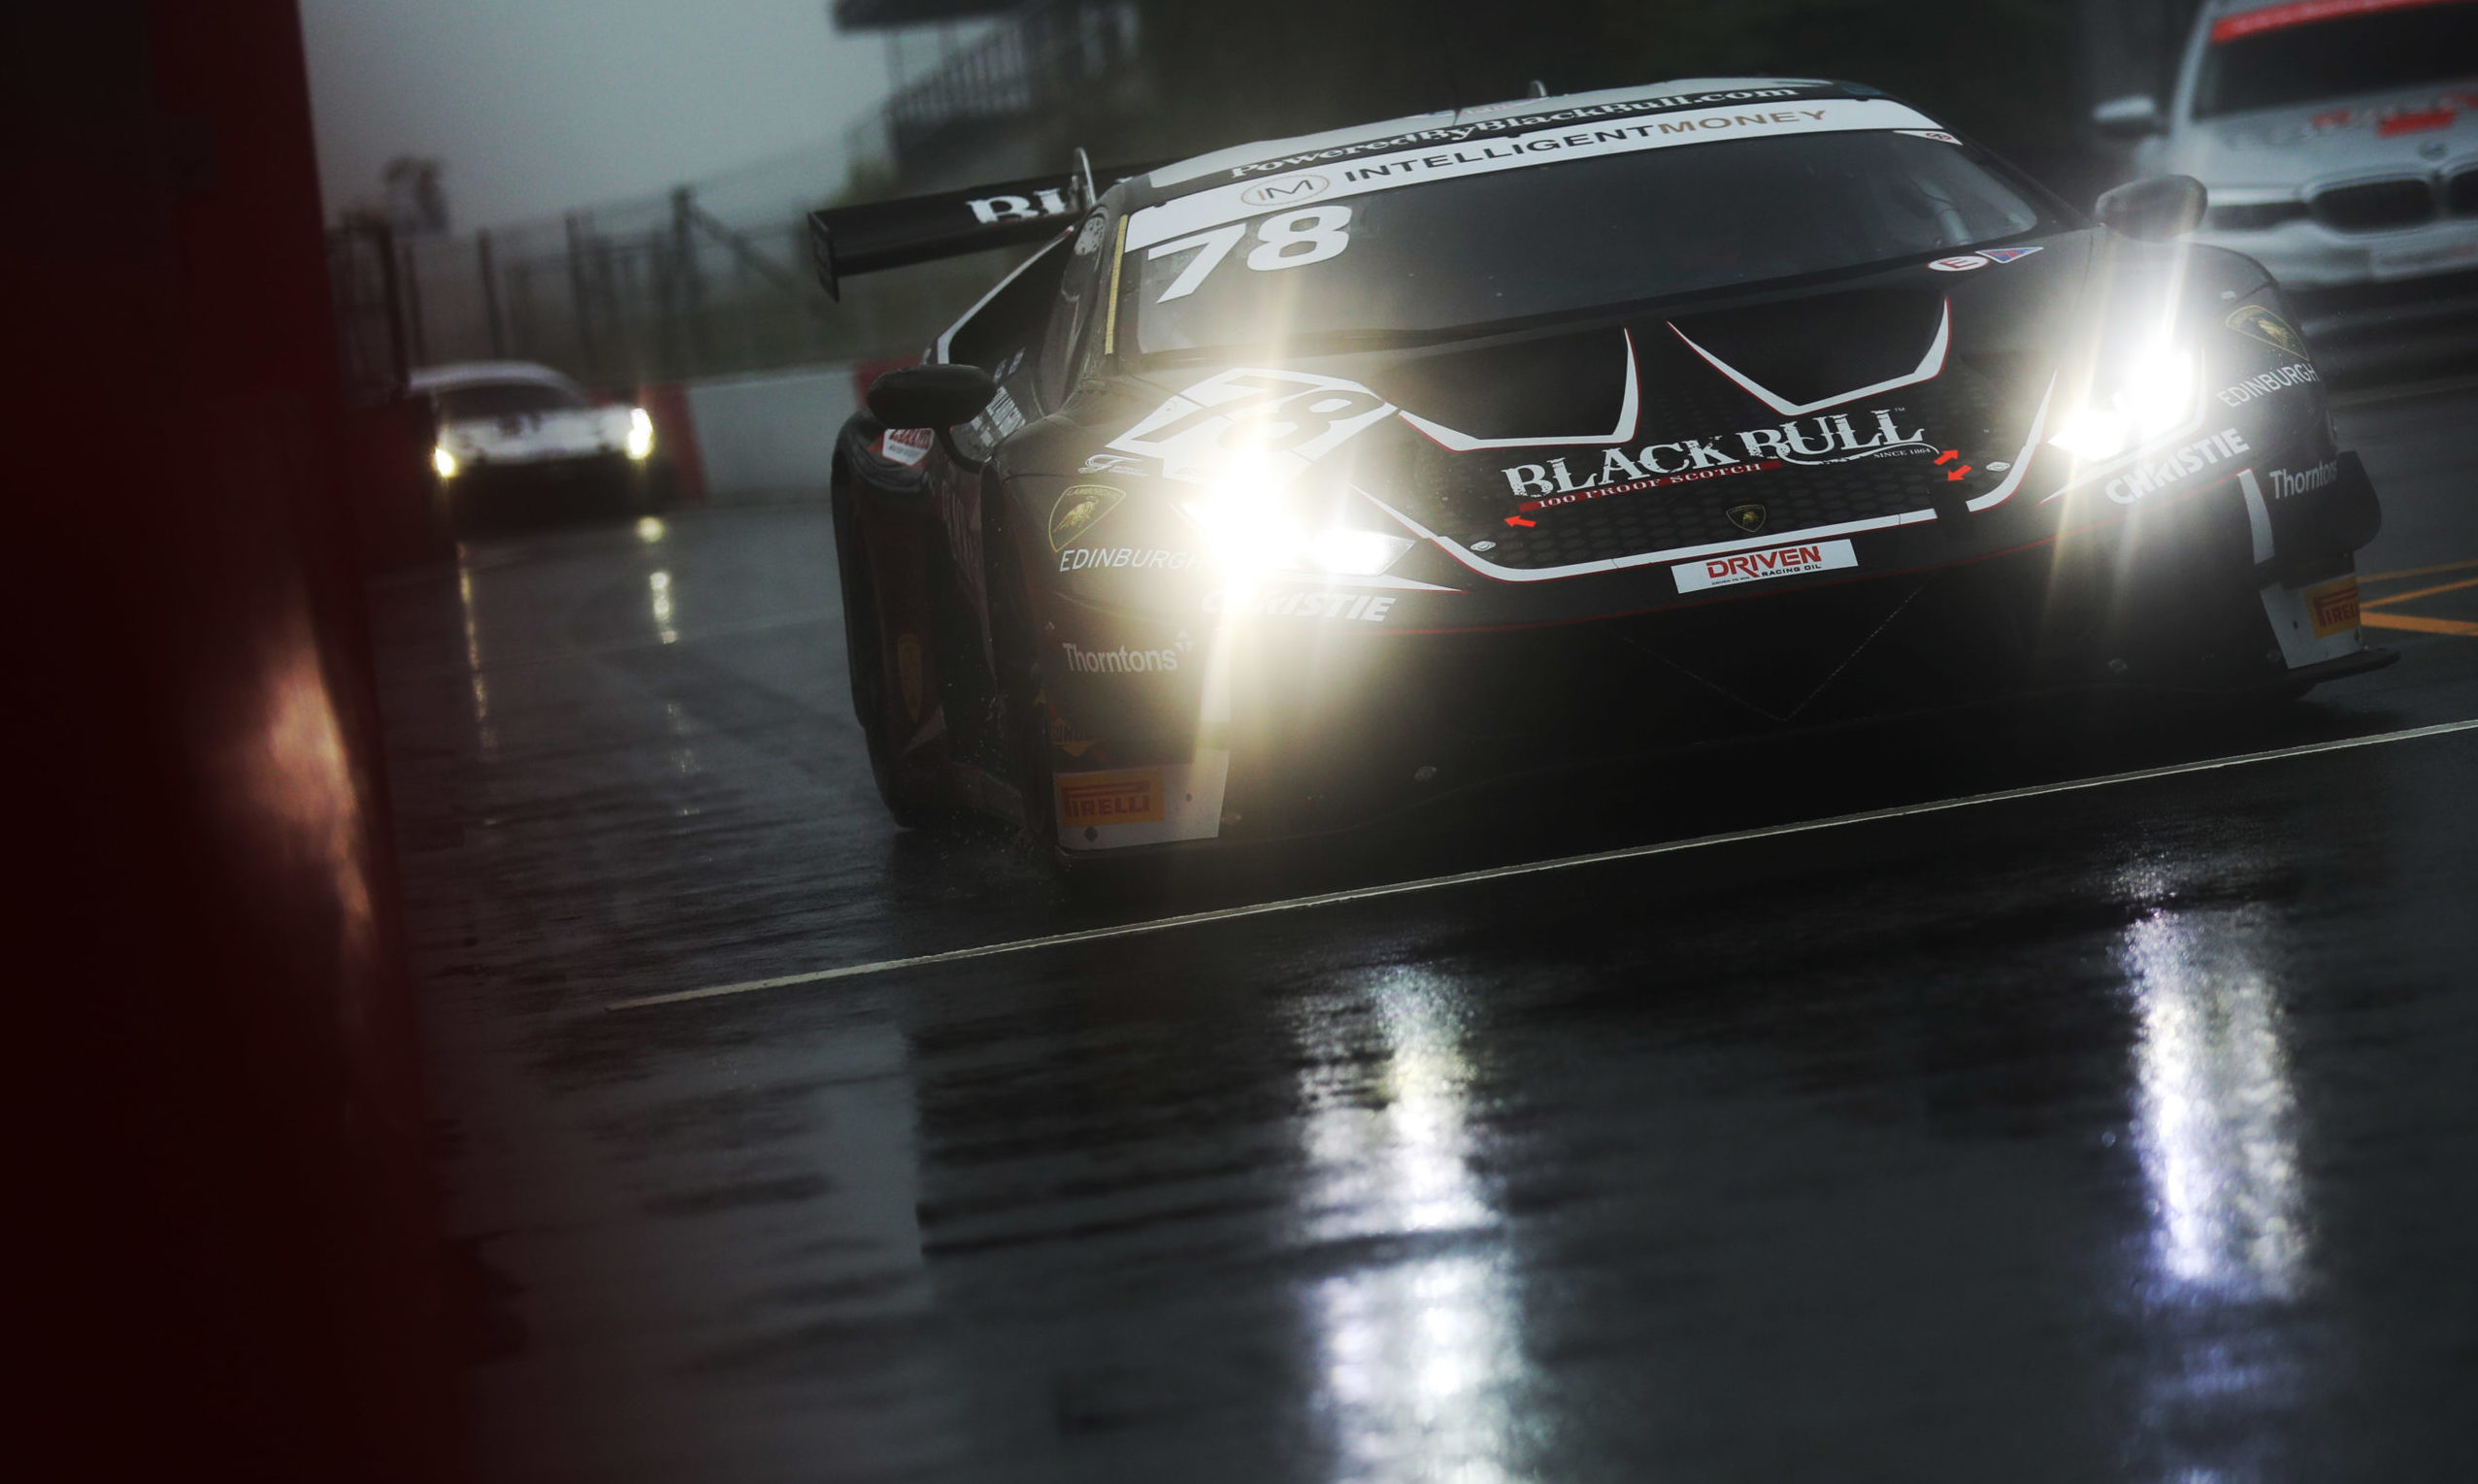 Donington Park conditions were gloomy for the latest British GT outing.